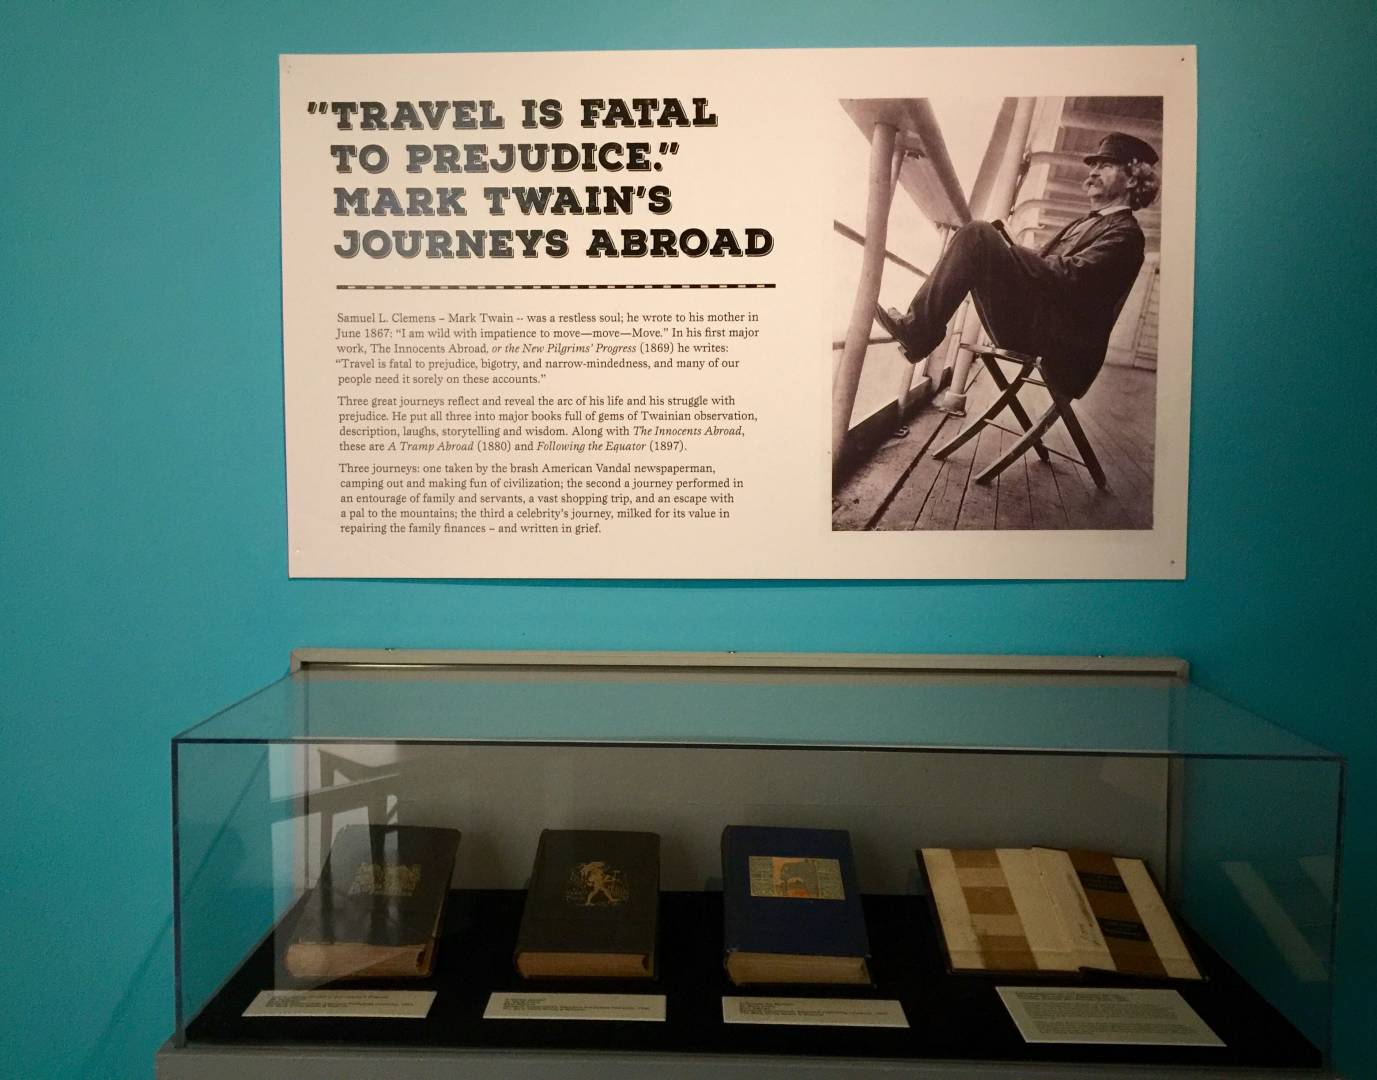 Mark Twain's House and Museum, travels and reflexions